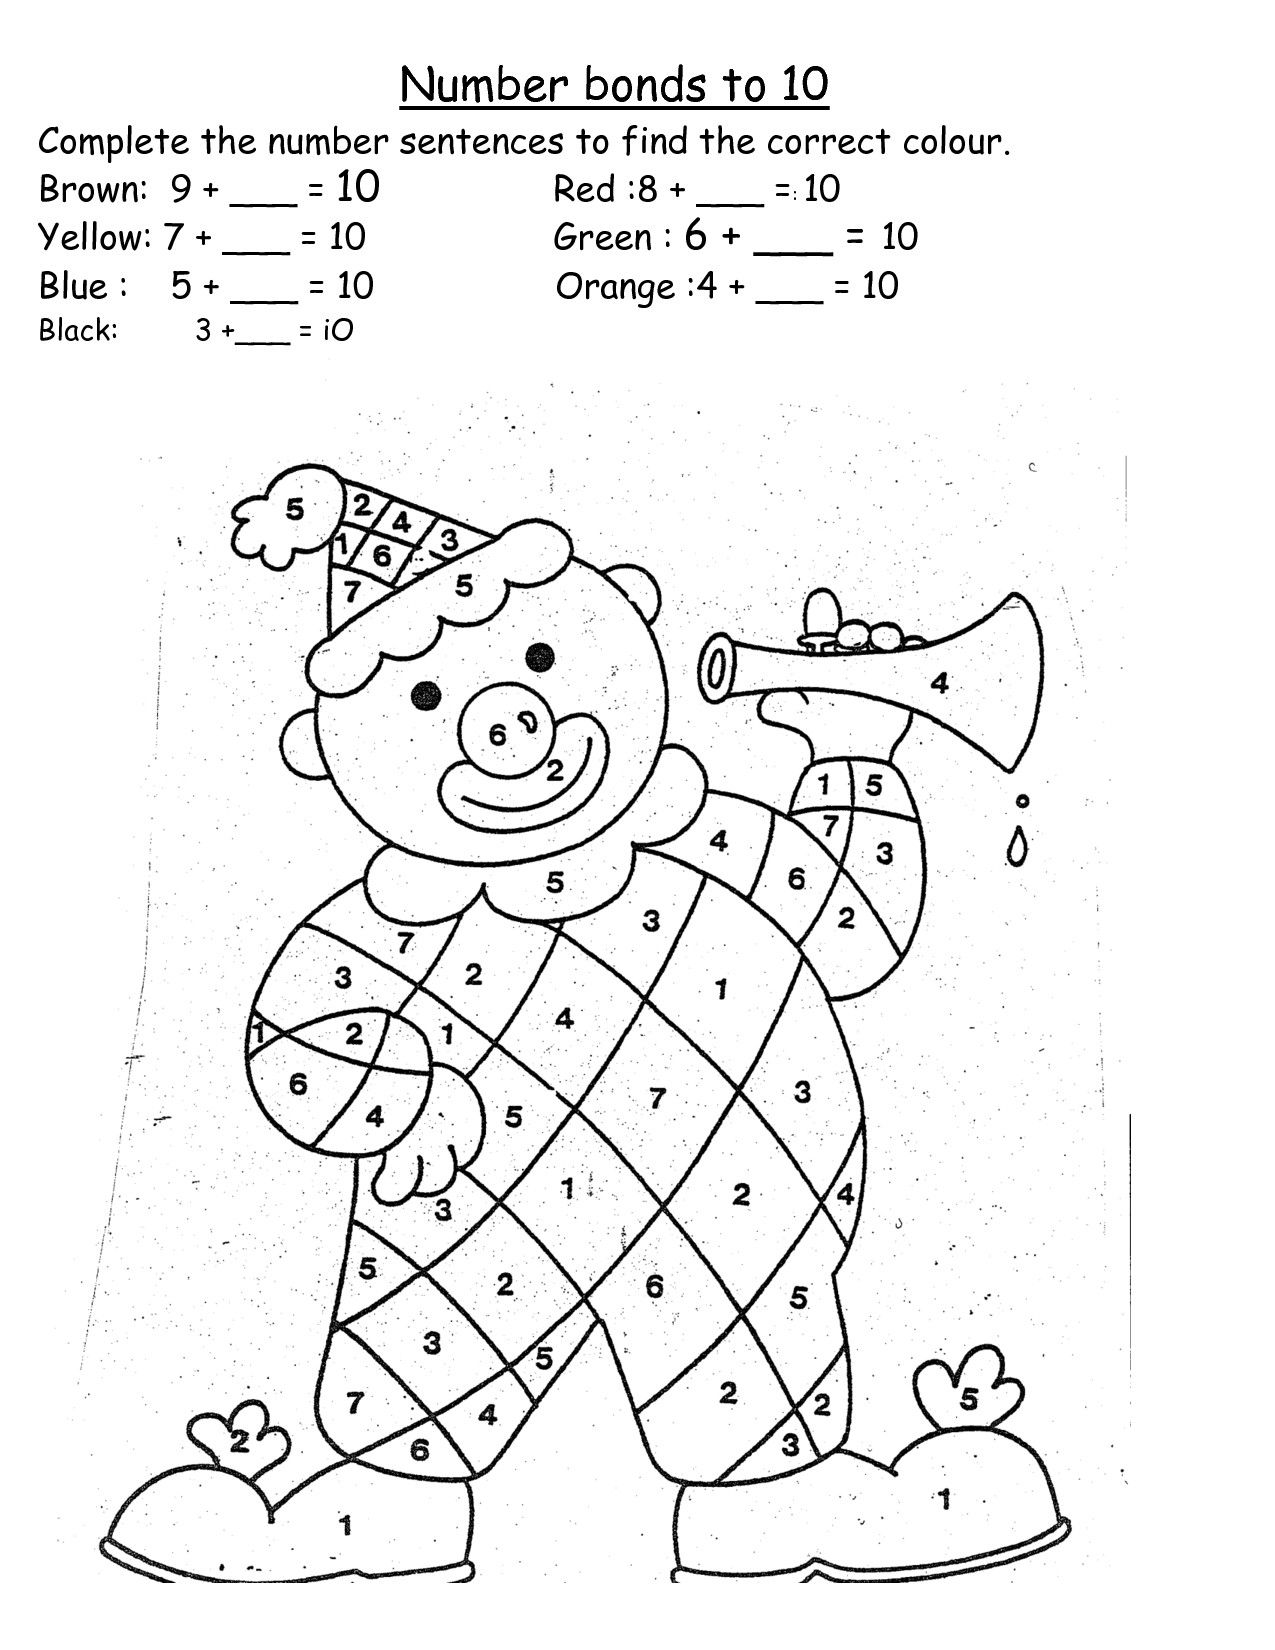 Number Bonds Rainbow Worksheet Inspirationa Number Bonds